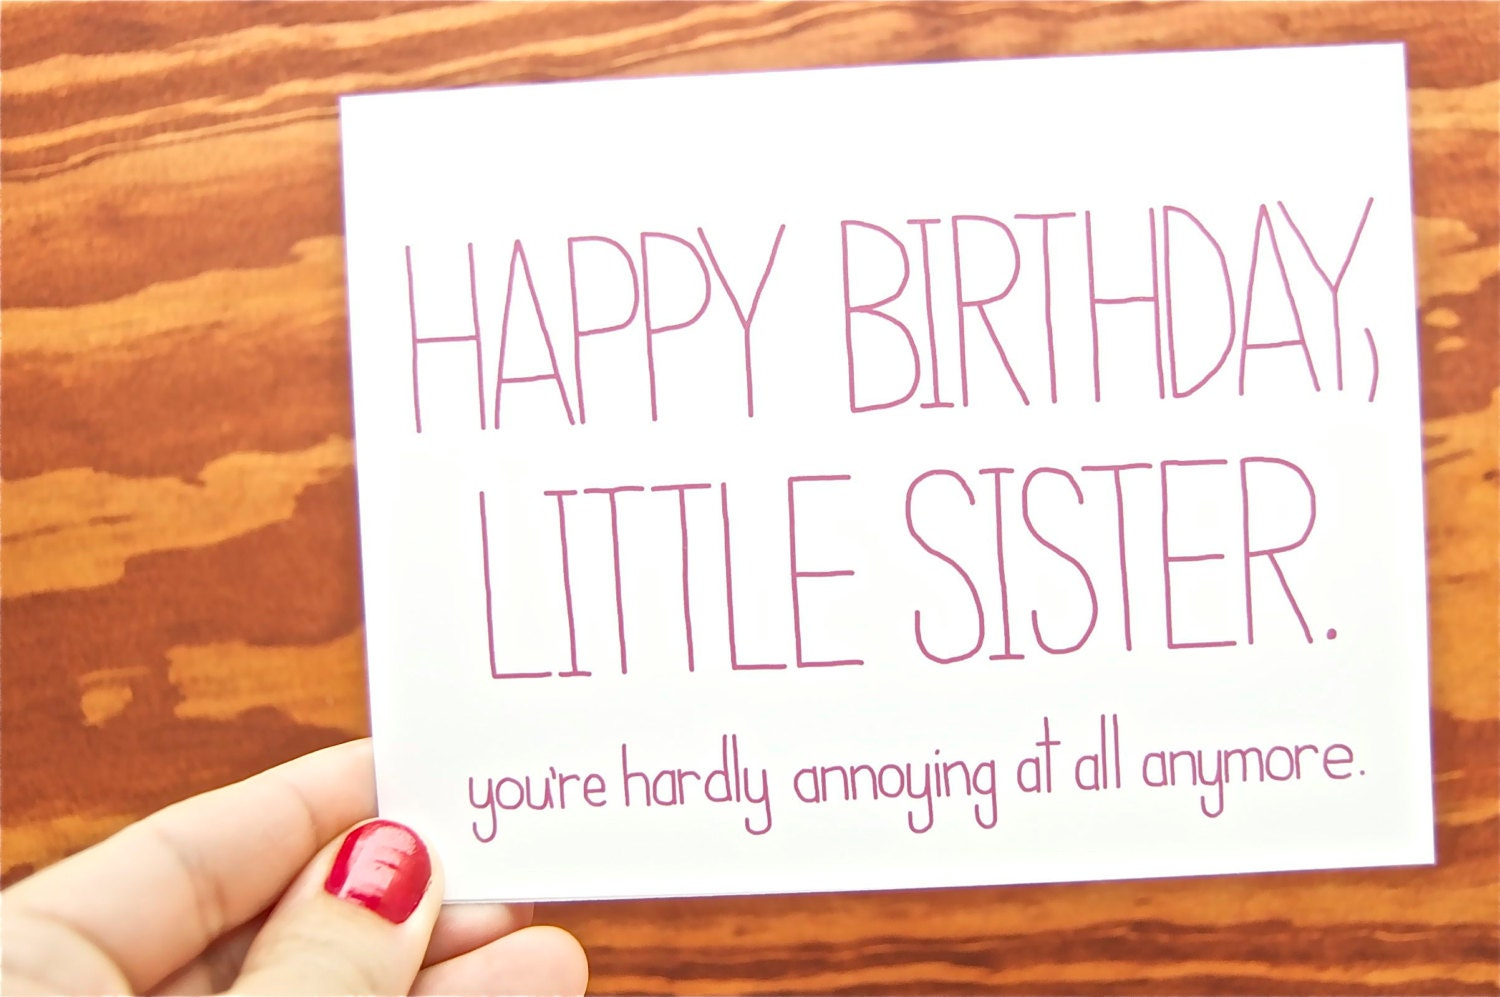 Sister Funny Quotes Funny Birthday Wishes For Sister Quotes Happy Birthday Wishes For